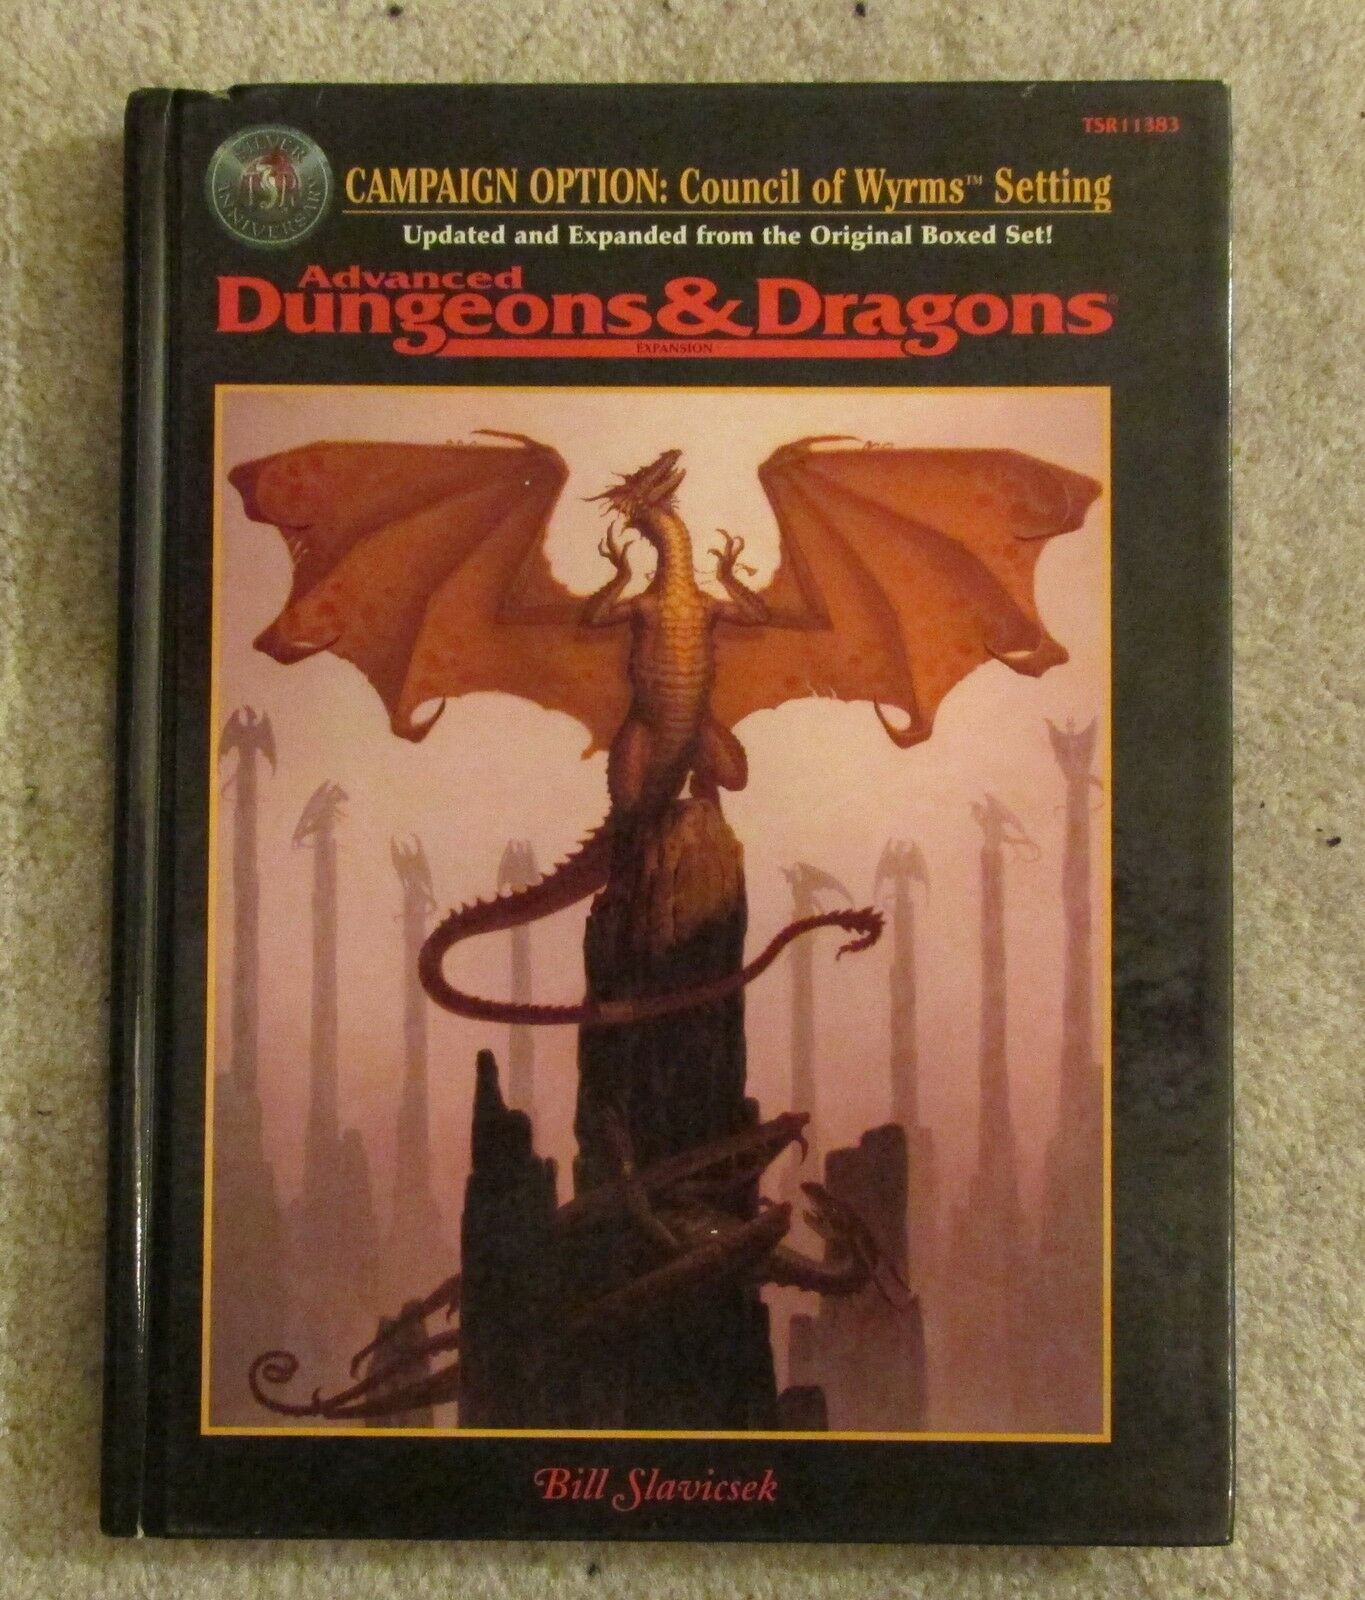 Dungeons & dragons council of wyrms  book